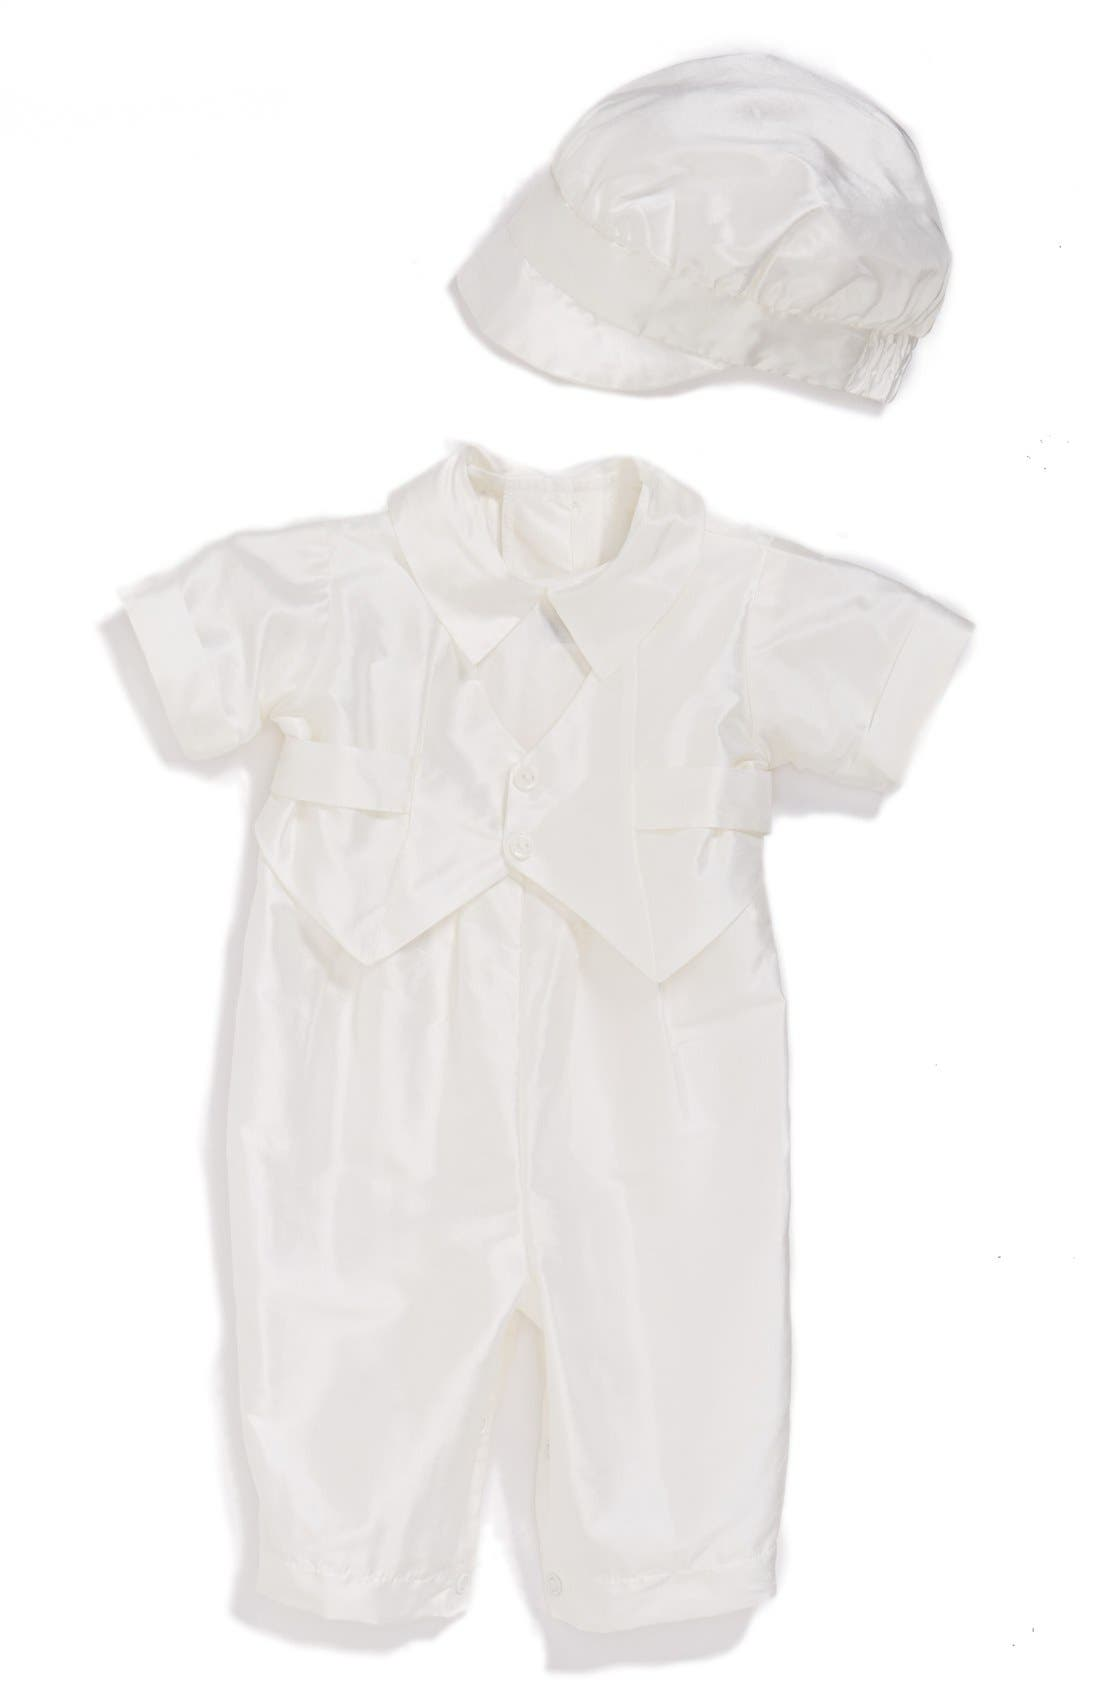 Main Image - Little Things Mean a Lot Silk Dupioni Romper and Hat Set (Baby)